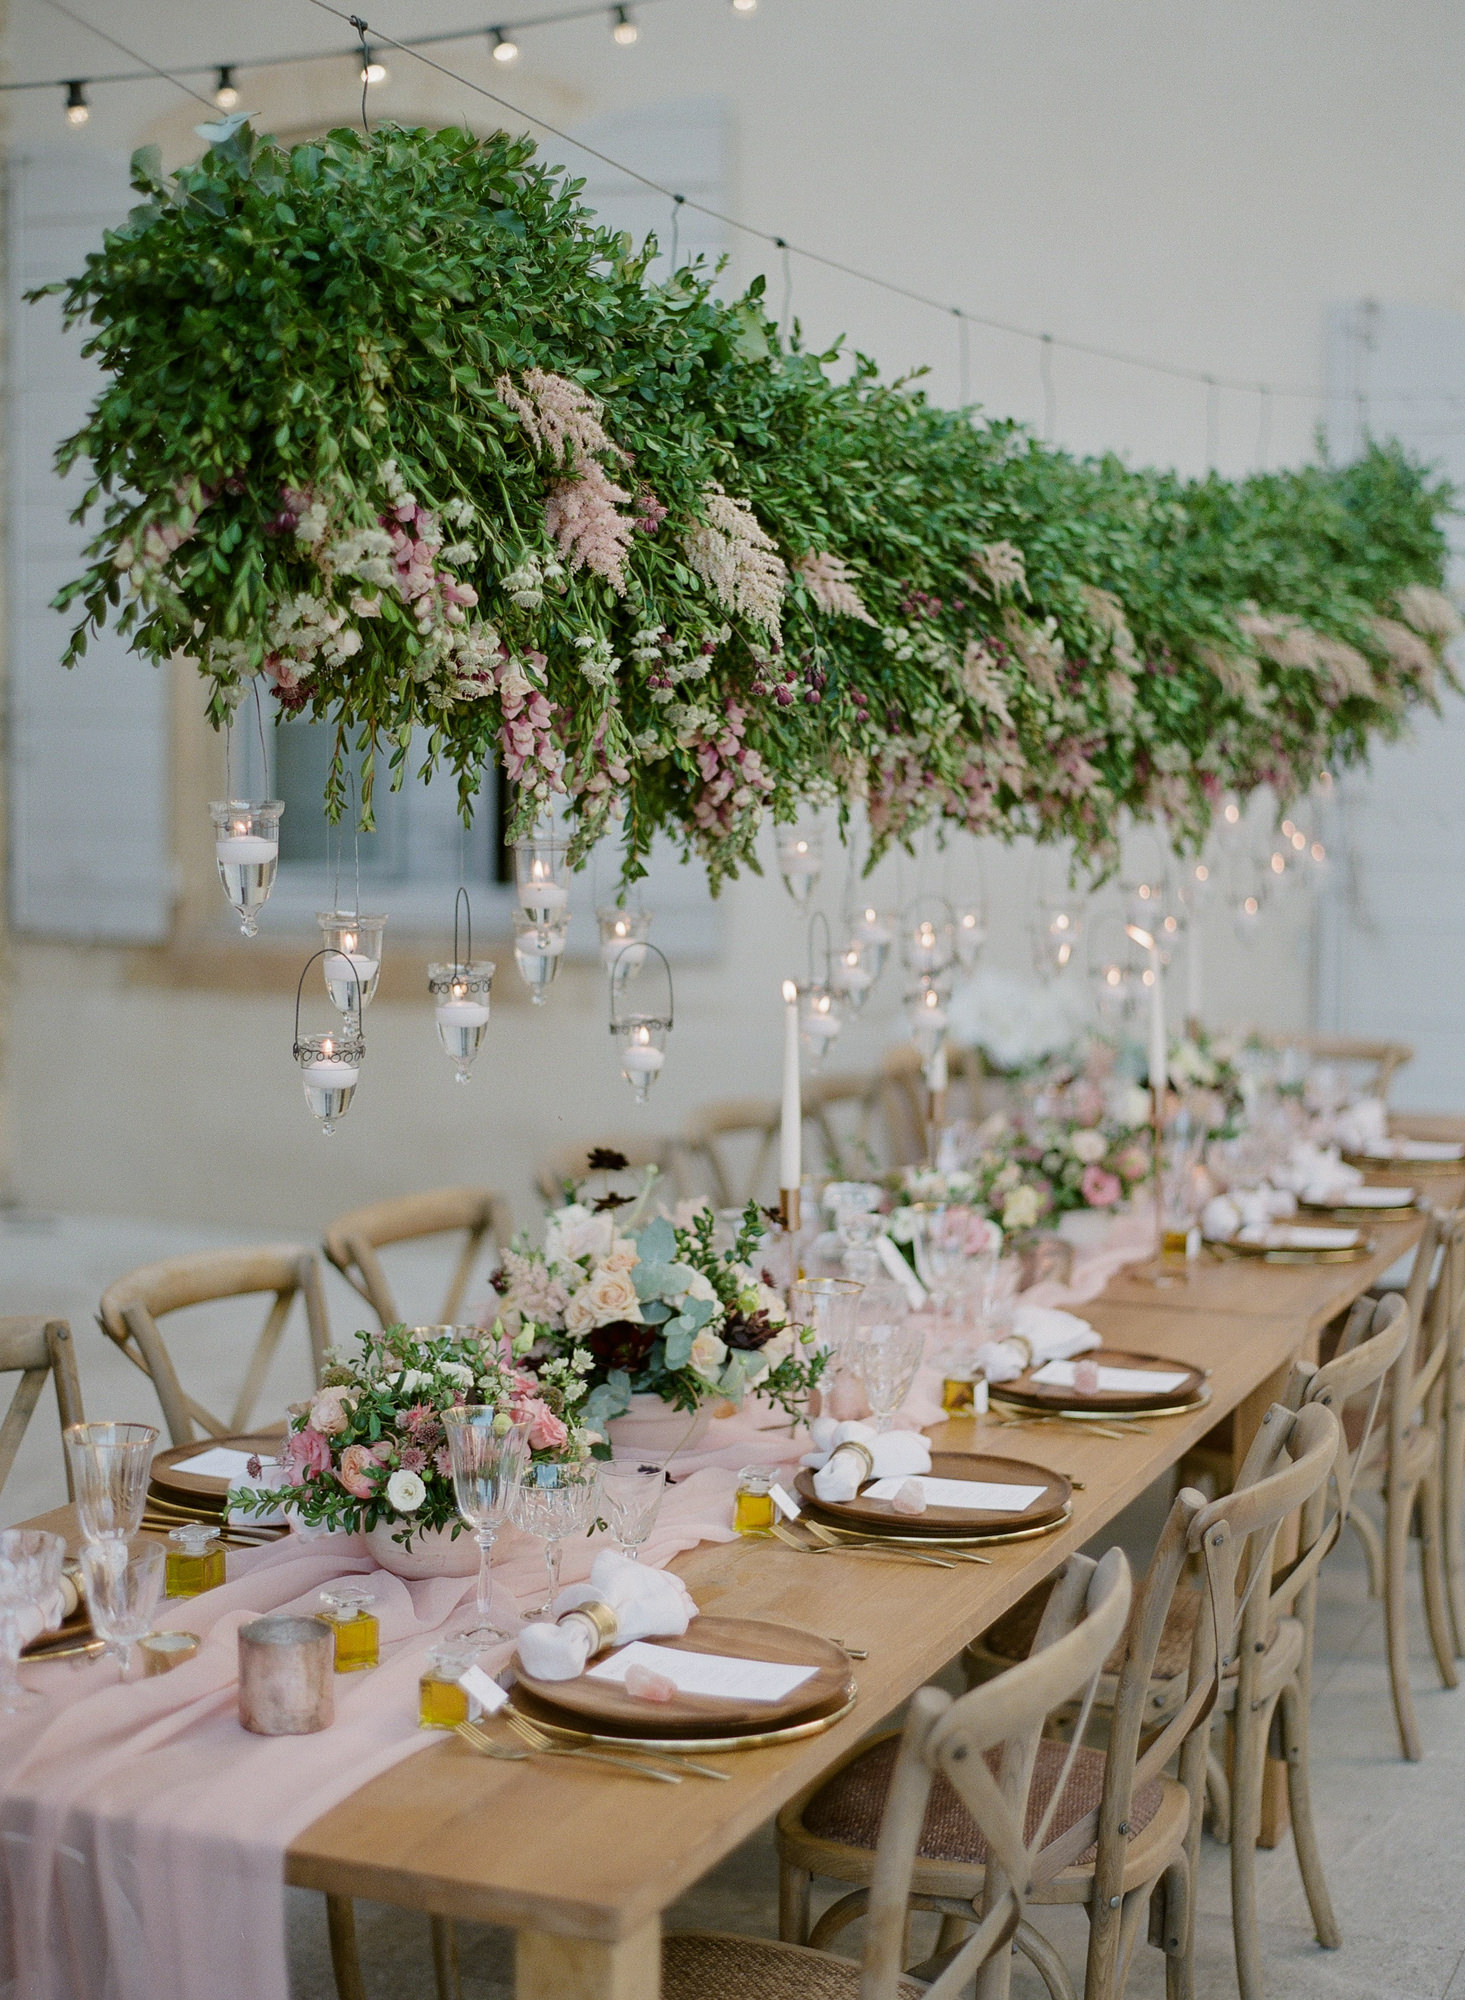 Reception with hanging astilbe and snapdragon candlelight chandelier - Greg Finck Photography